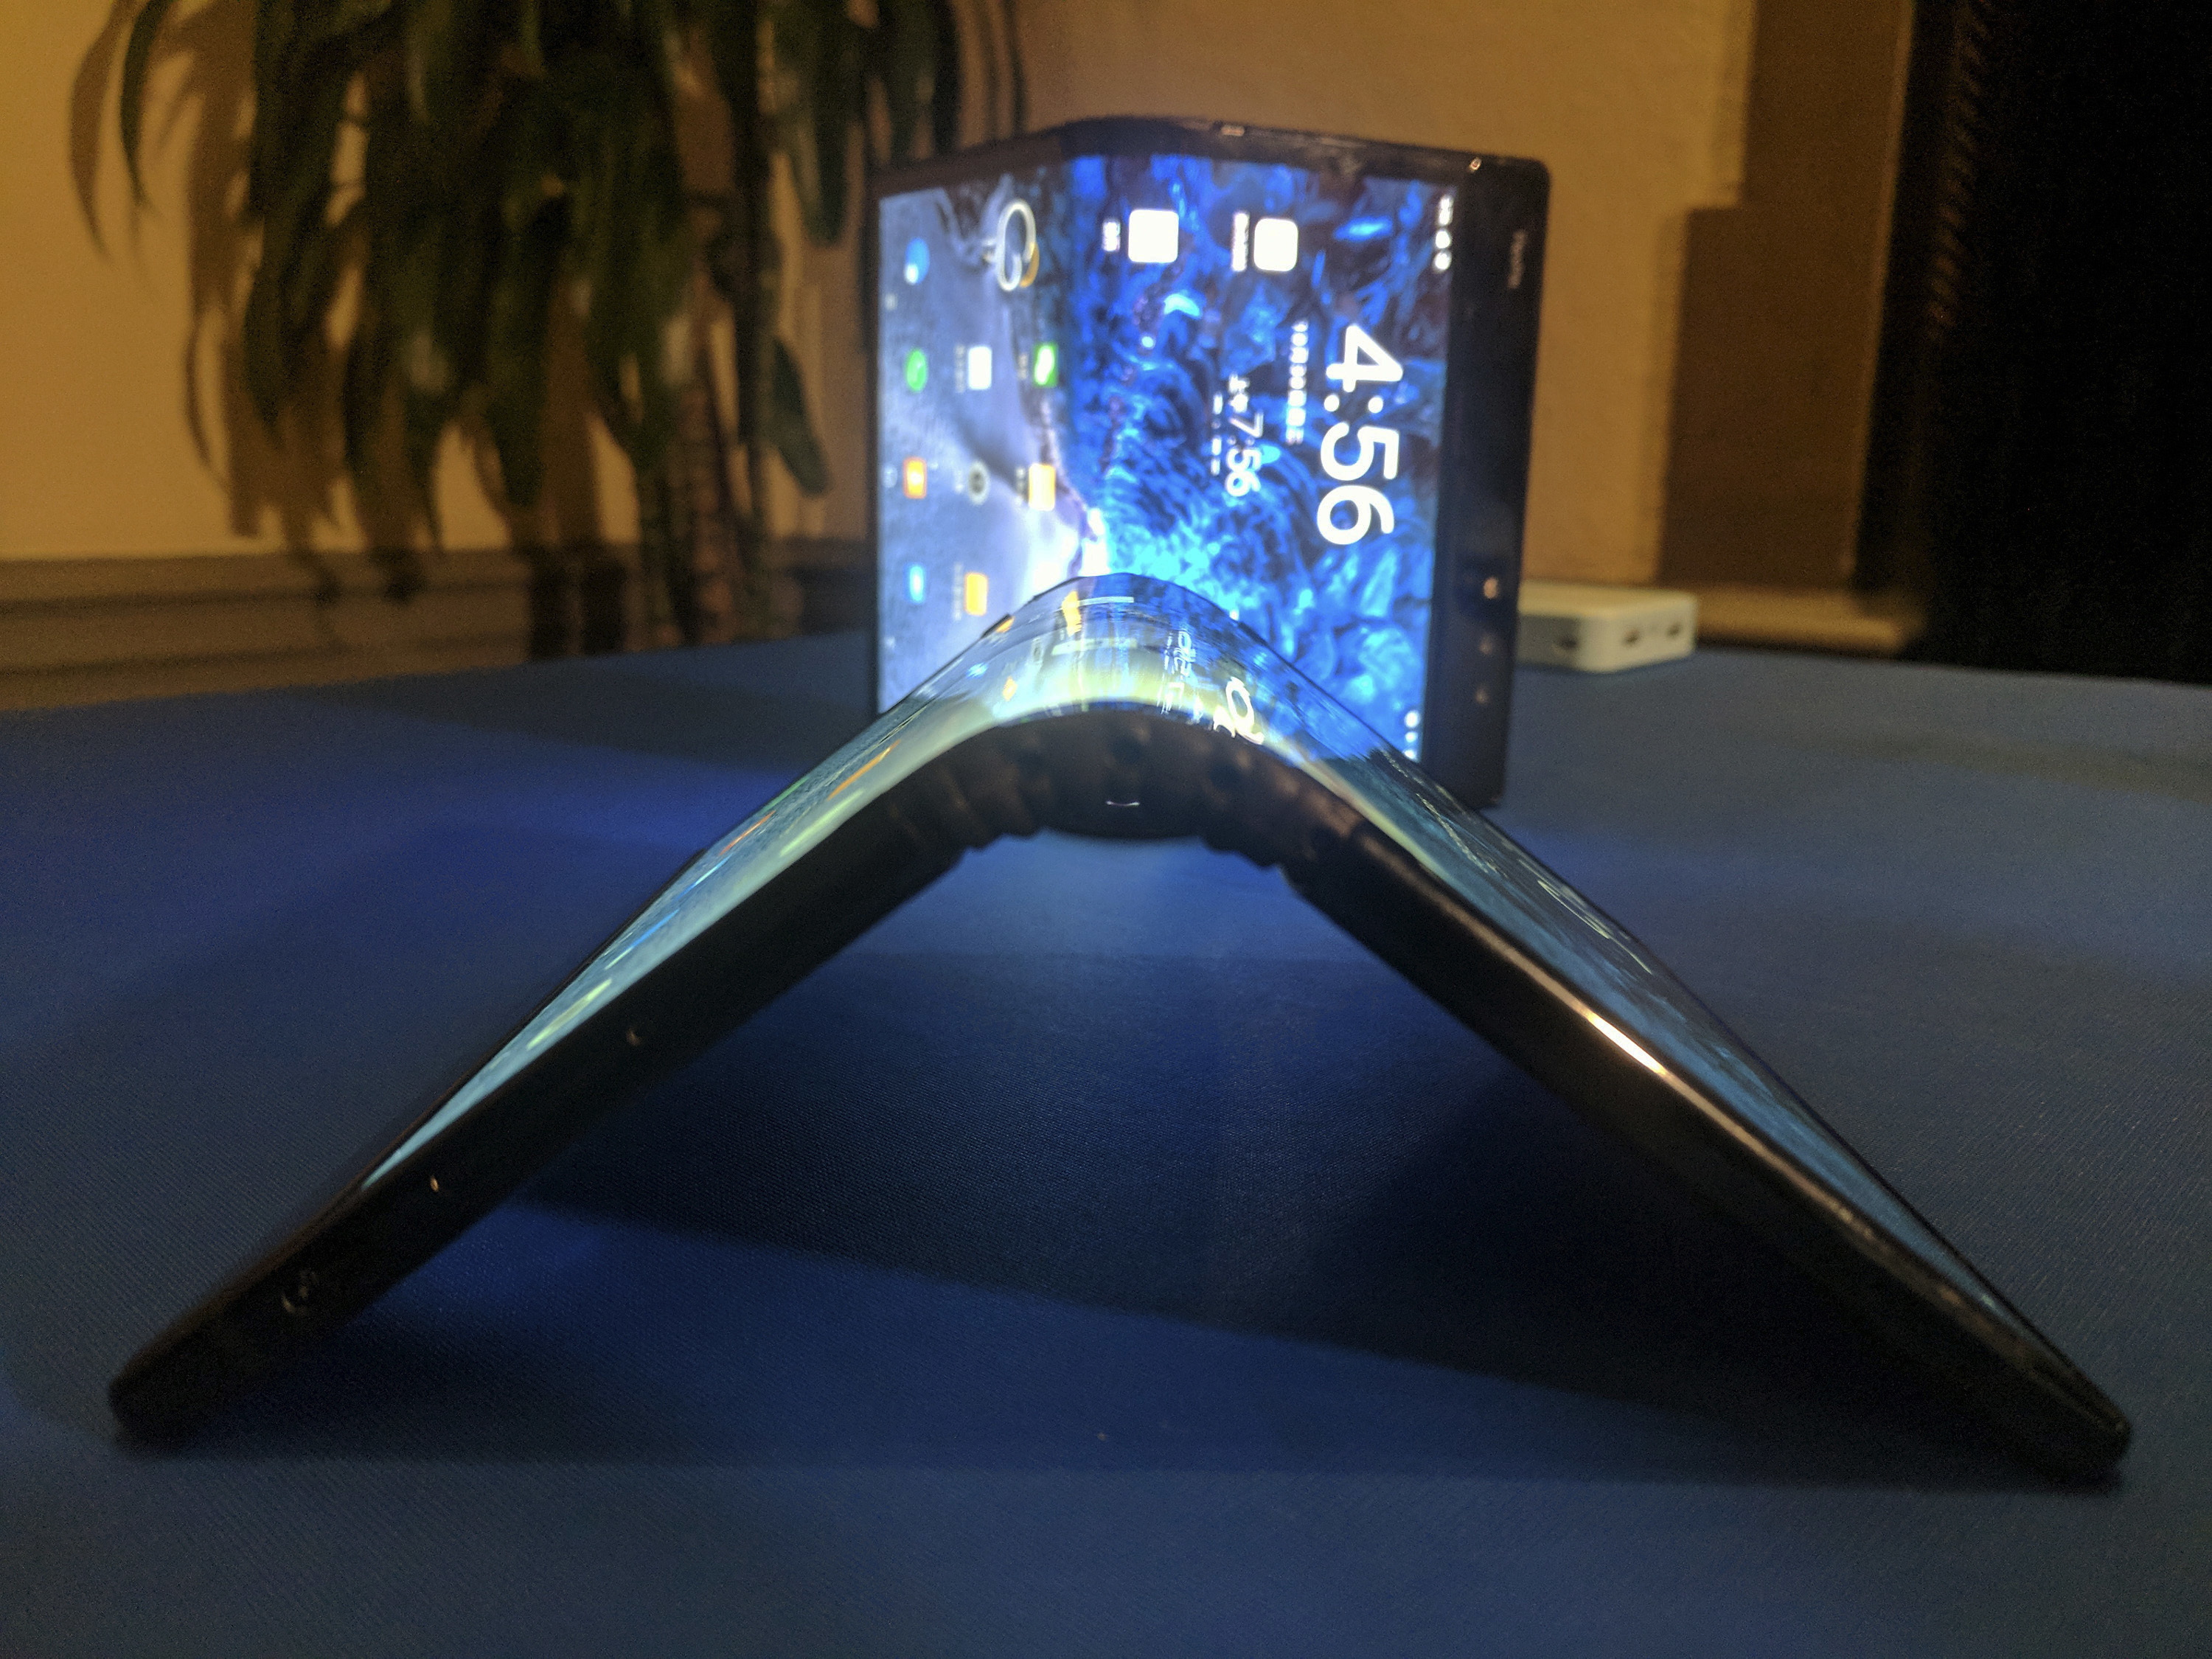 Samsung has unveiled its first smartphone with a bendable screen.